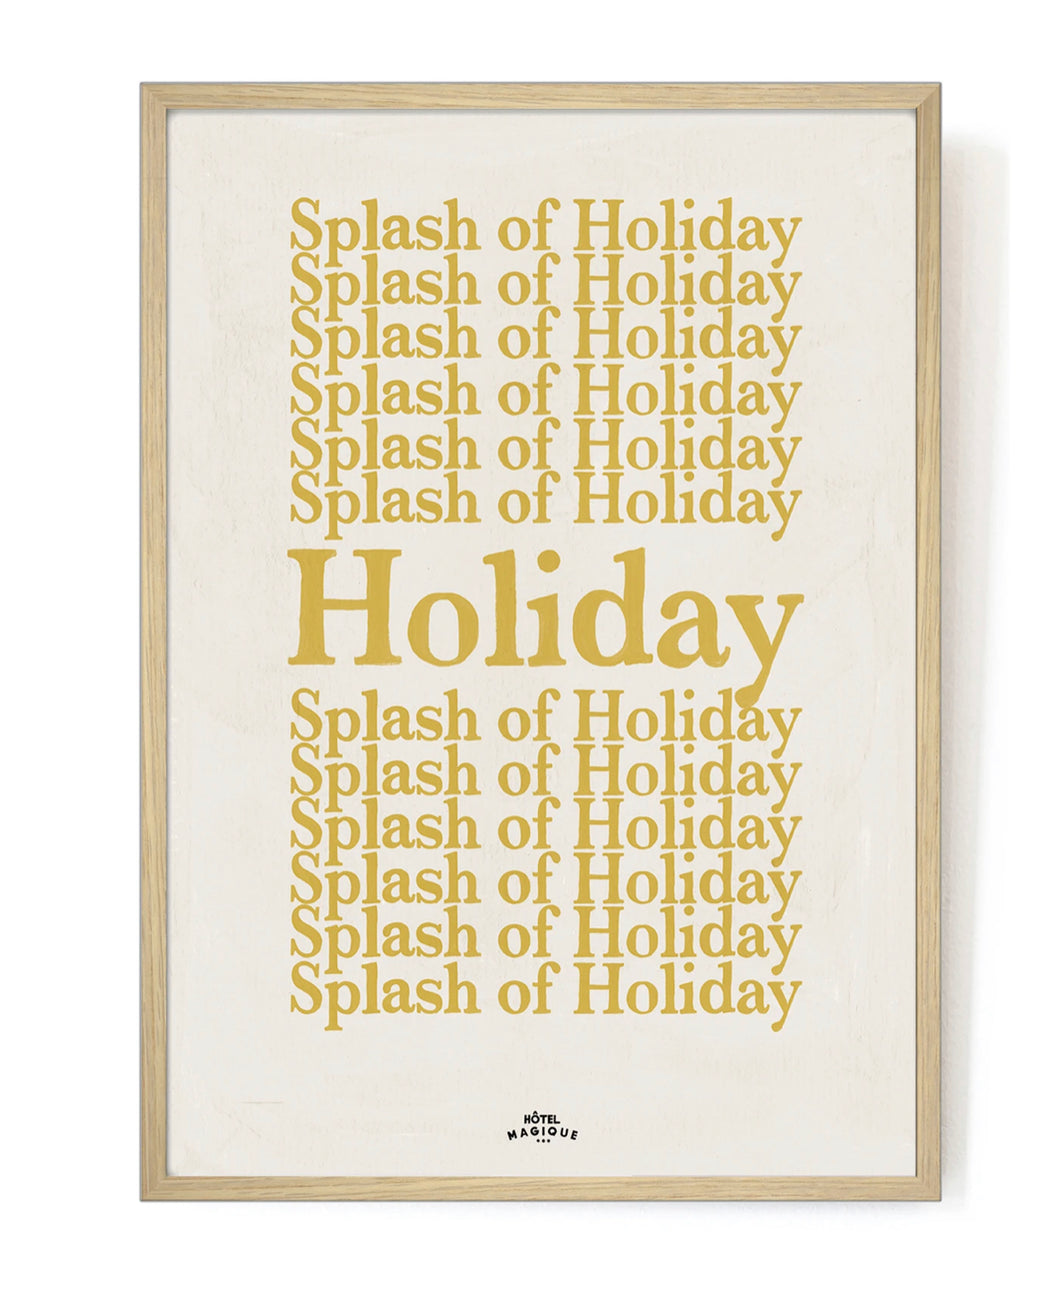 Hotel Magique A Splash of Holiday Art Print